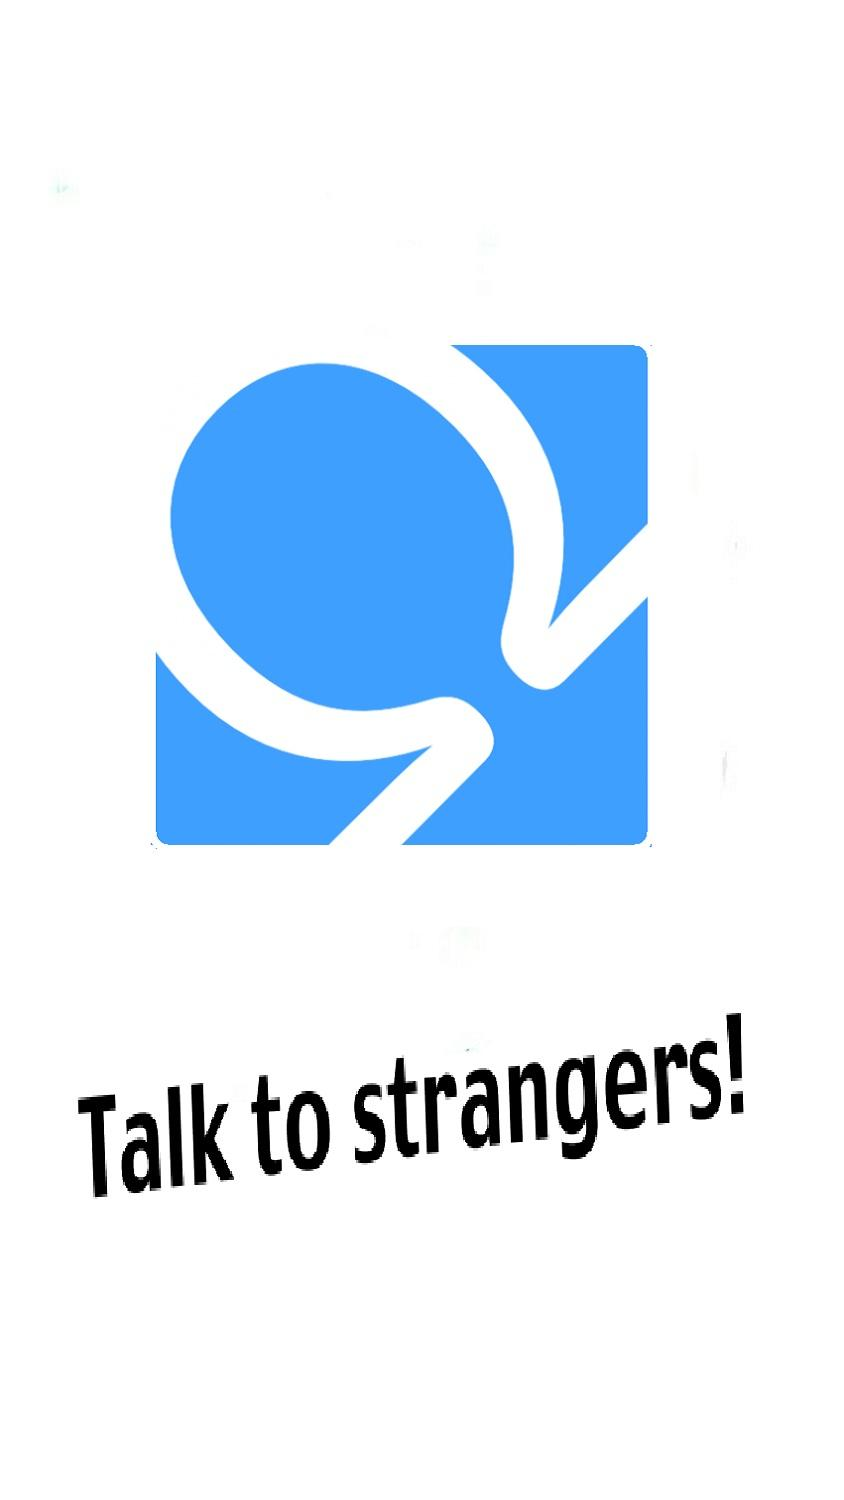 Strangers omegle chat to talk video Most Popular